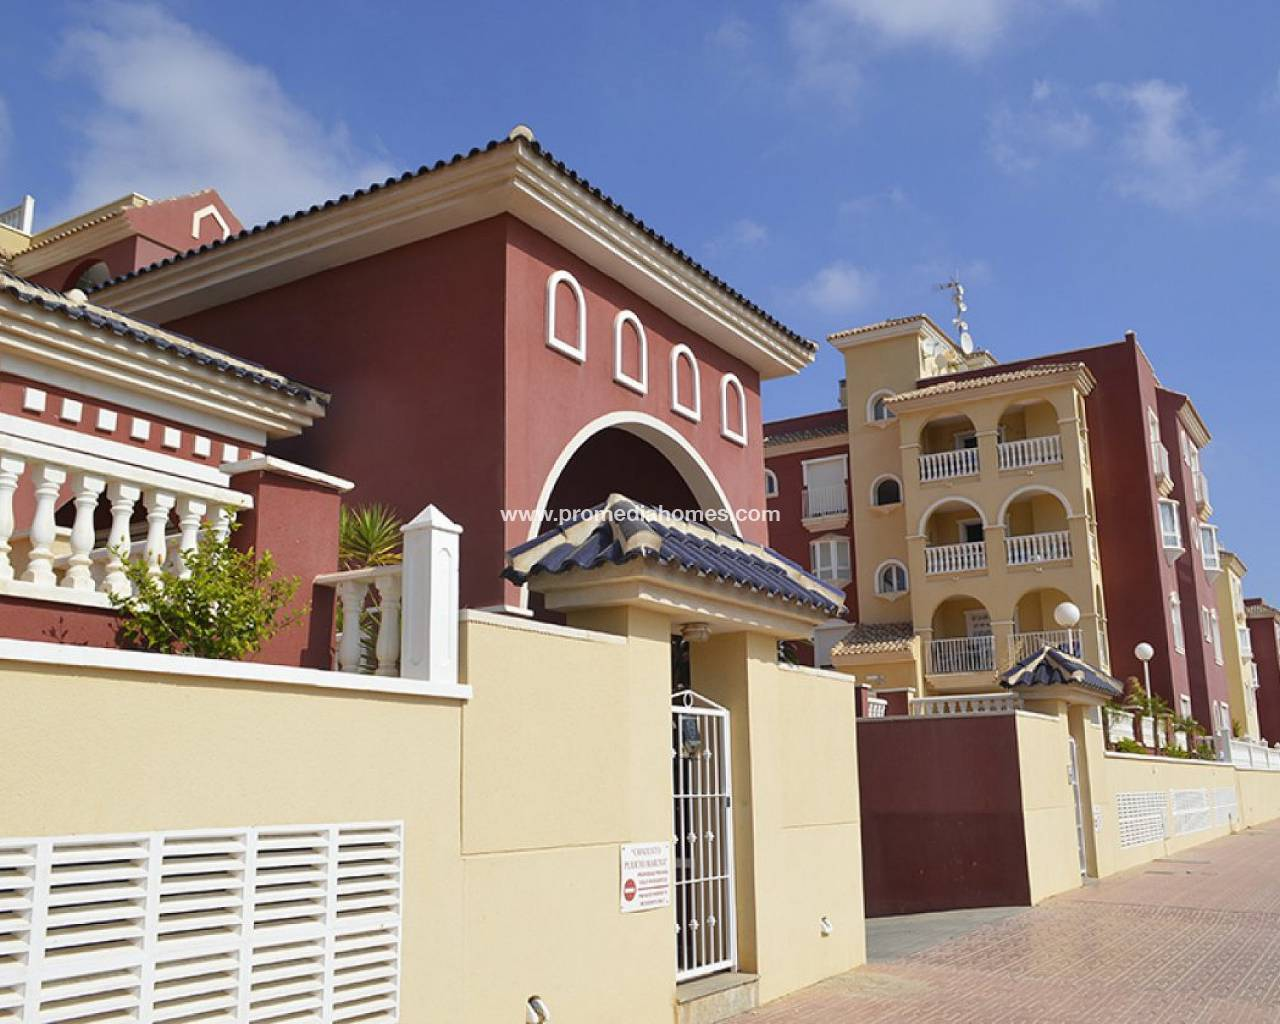 Apartment for sale in Los Alcazares close to beach